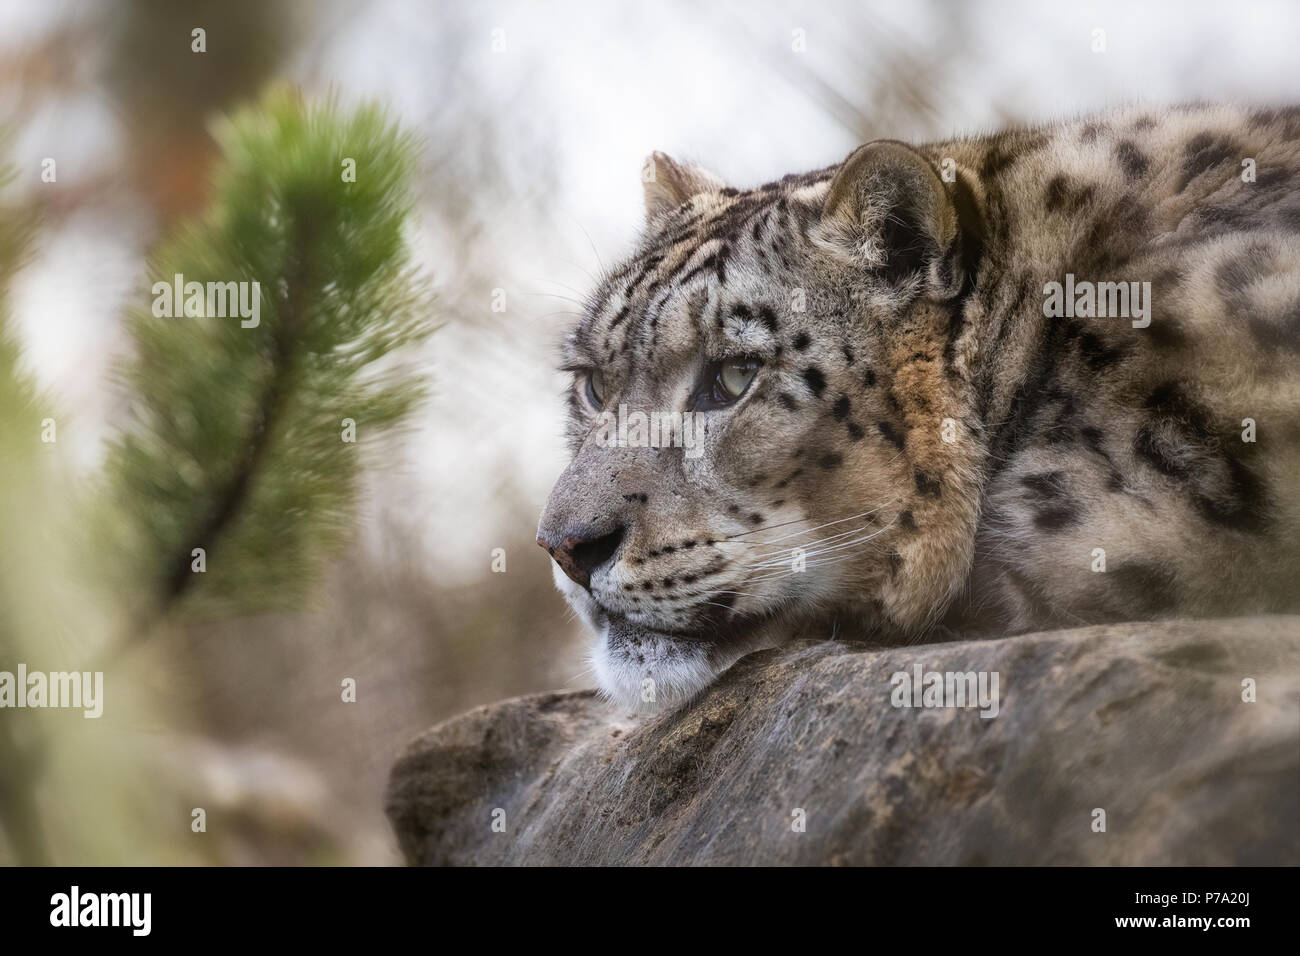 An adult snow leopard rests in the the undergrowth but keeps a watchful eye on her surroundings. Stock Photo